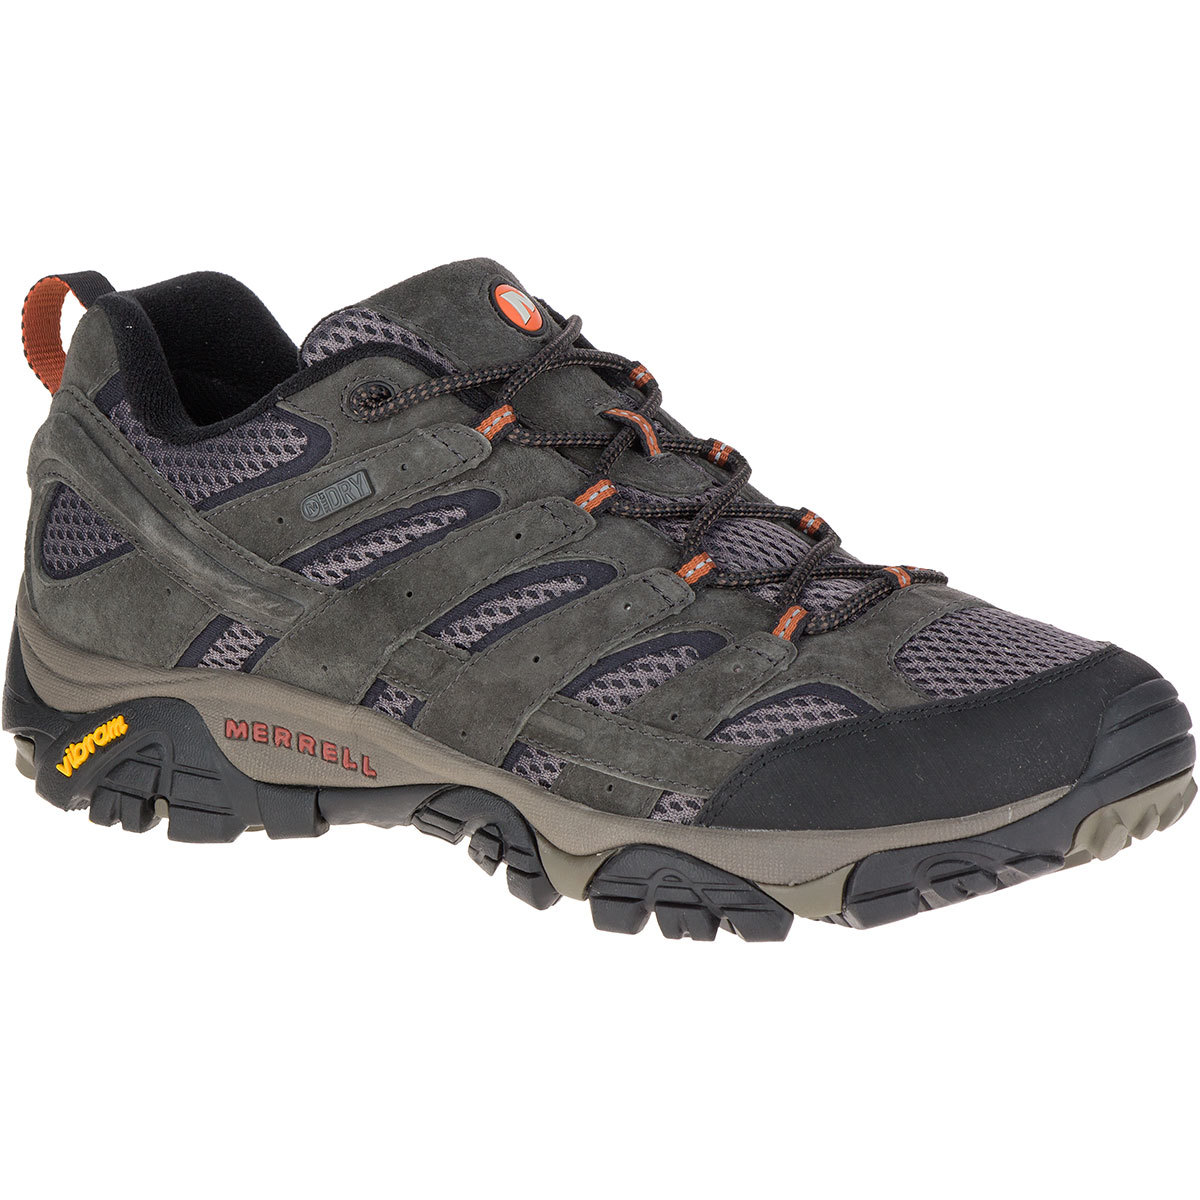 Merrell Men's Moab 2 Waterproof Hiking Shoes, Beluga, Wide - Black, 12